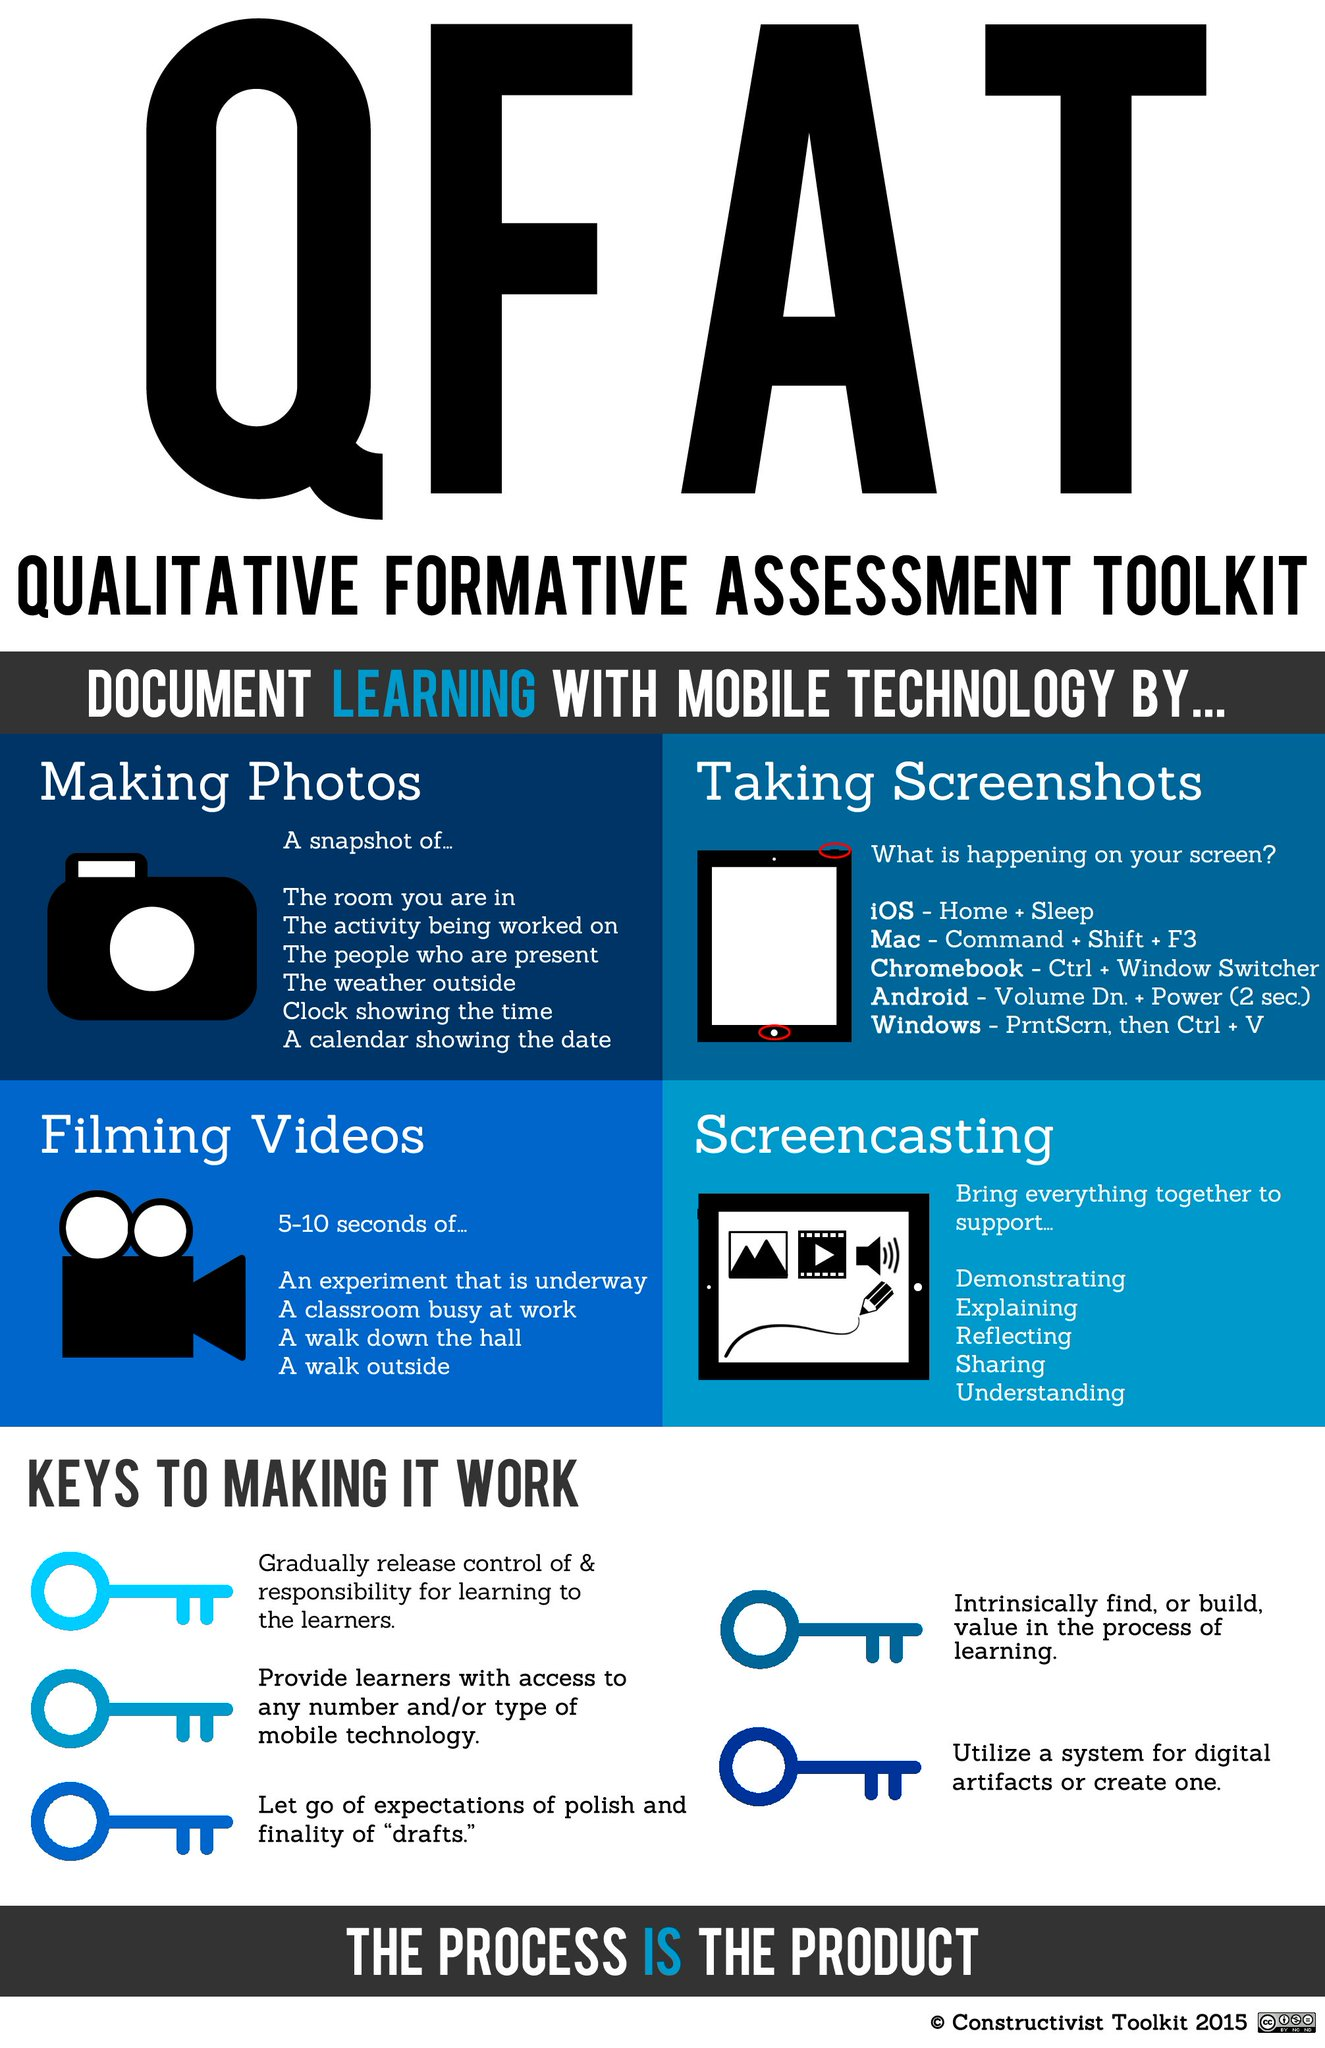 Qualitative formative assessment with your camera. Thanks @tmmartindell for sharing! #edchat #edtechchat #dtsdchat https://t.co/j1xO1MU4Uh